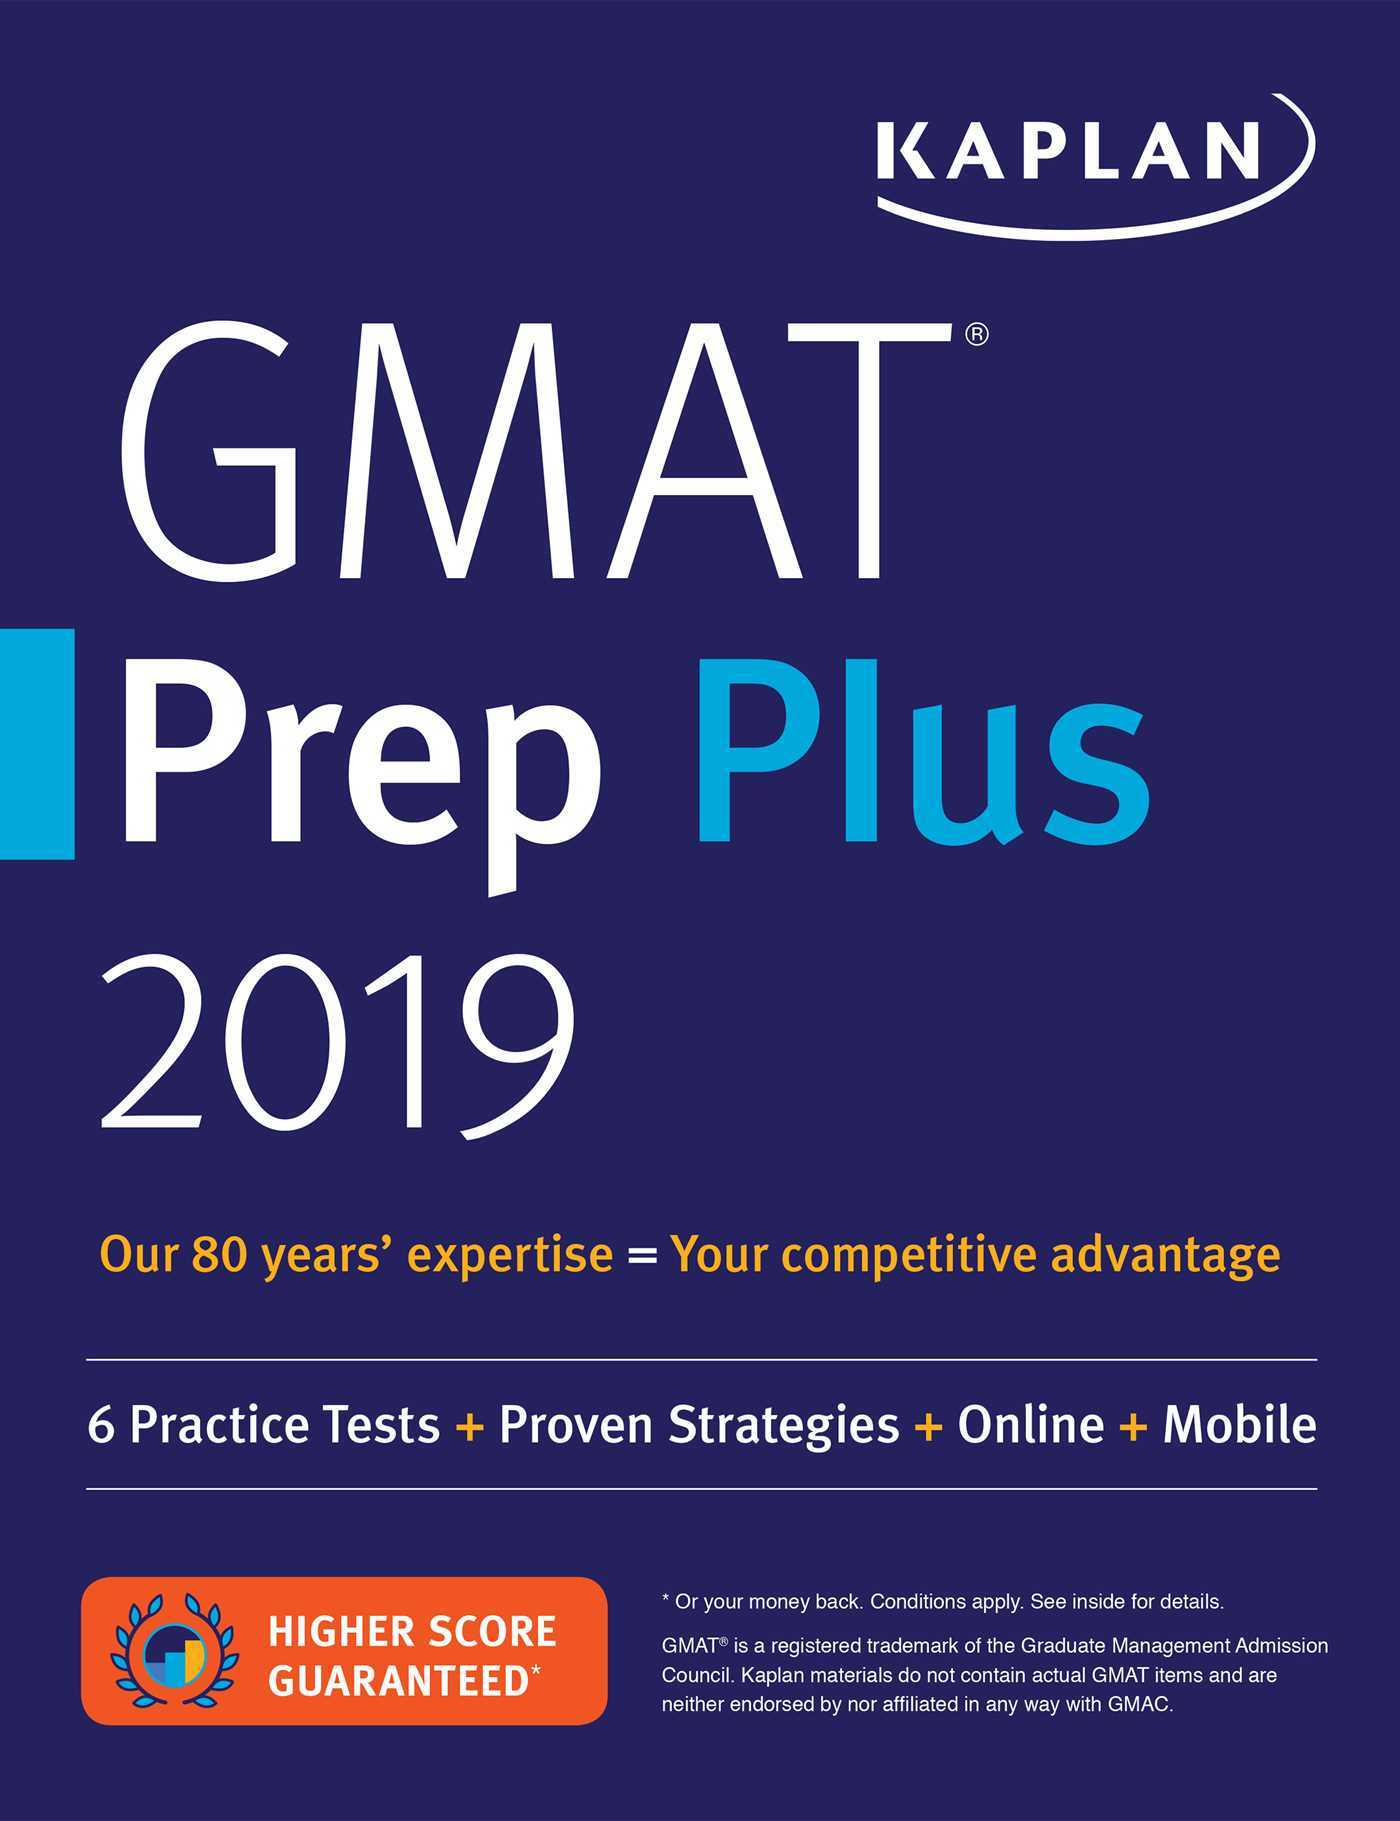 GMAT Prep Plus 2019: 6 Practice Tests + Proven Strategies + Online + Mobile